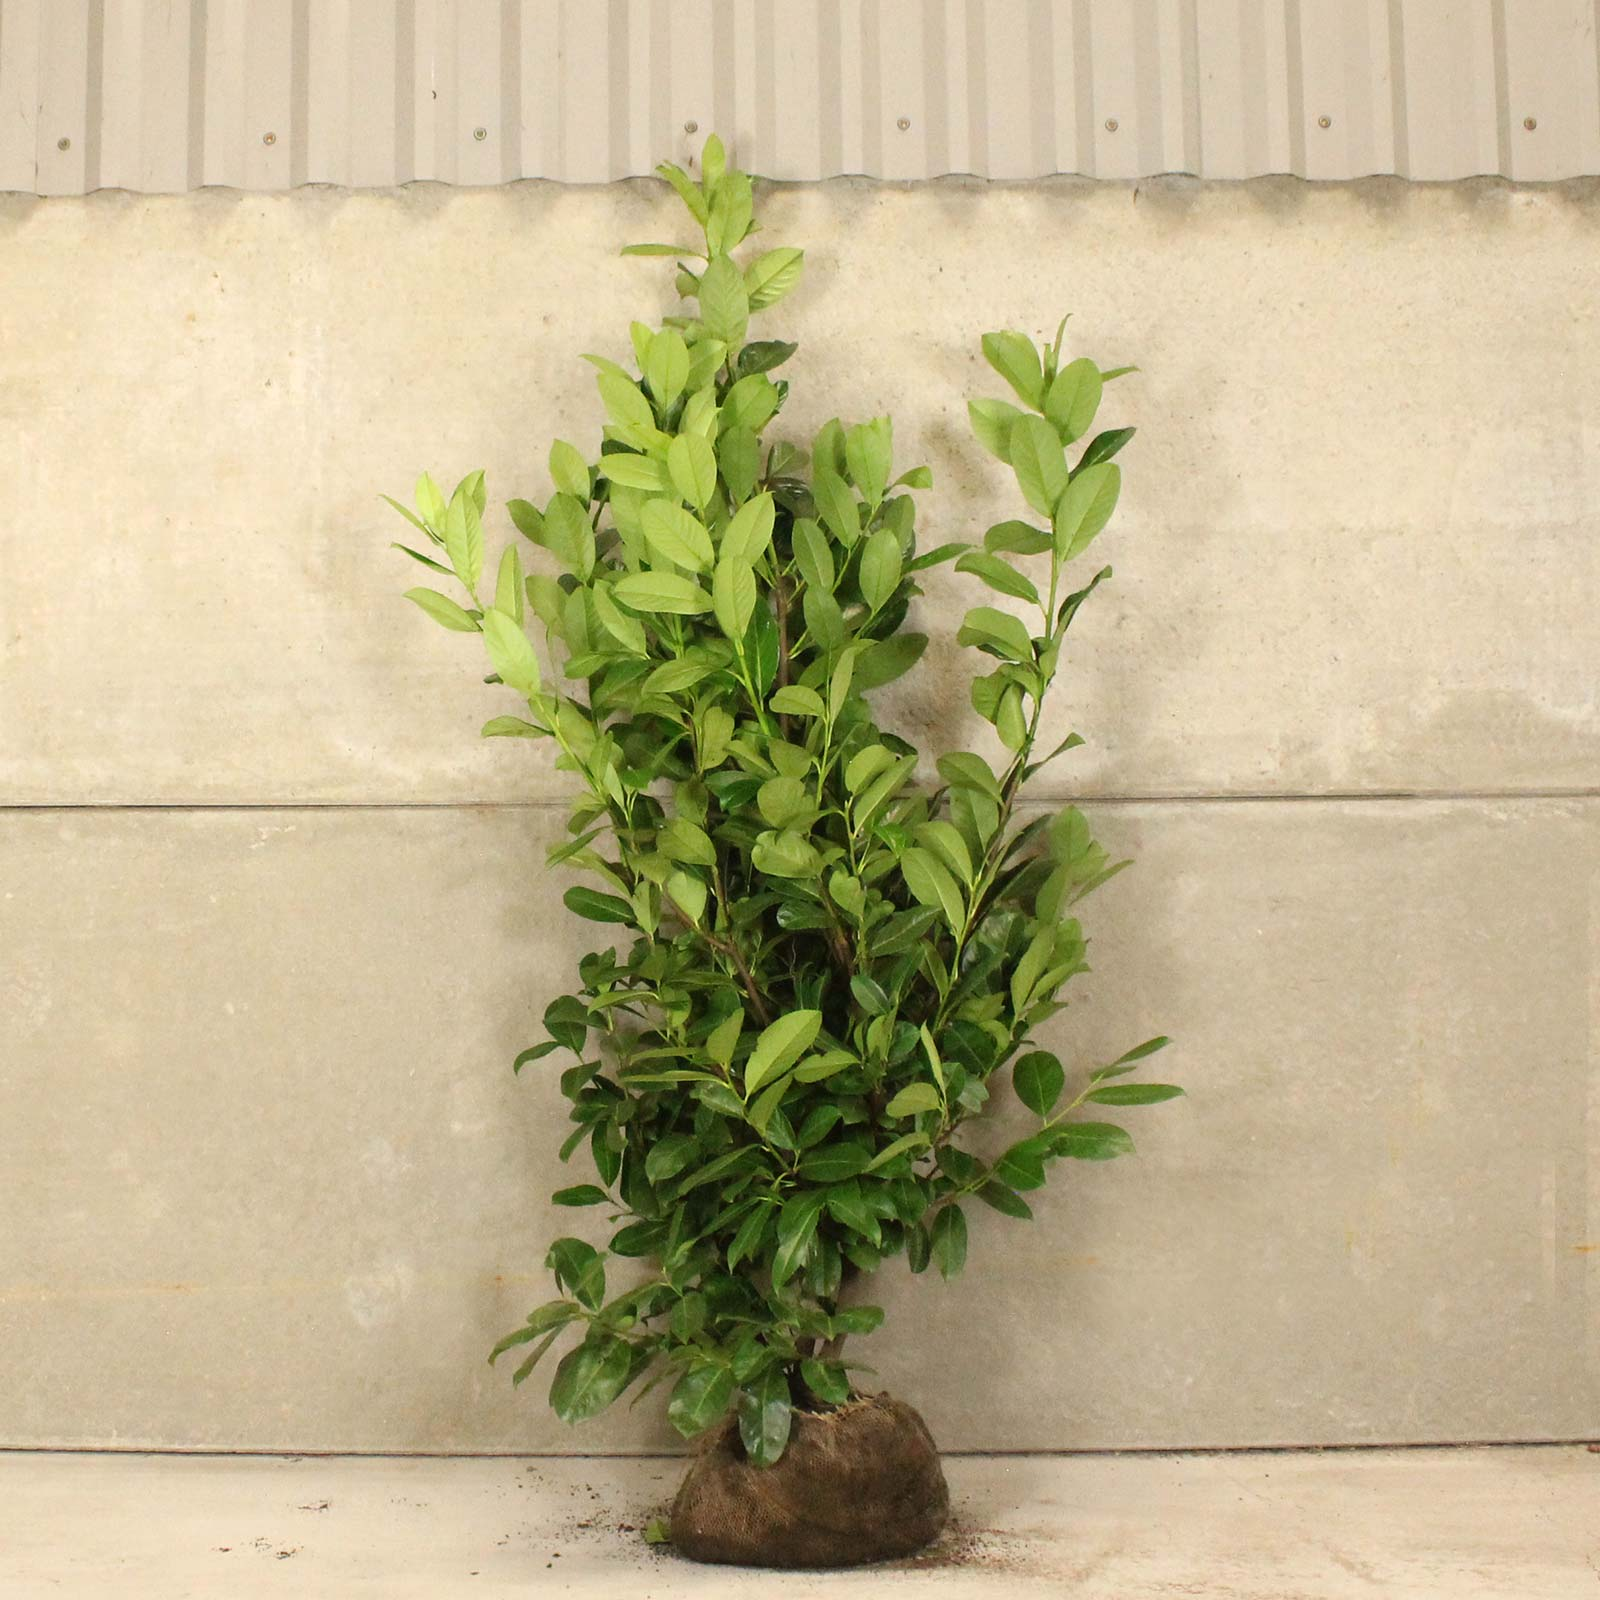 Posh Tight Laurocerasus Cherry Laurel Root Ball Cherry Laurel Root Ball Hedges Direct Uk Cherry Laurel Tree Problems Cherry Laurel Tree Bright houzz-03 Cherry Laurel Tree